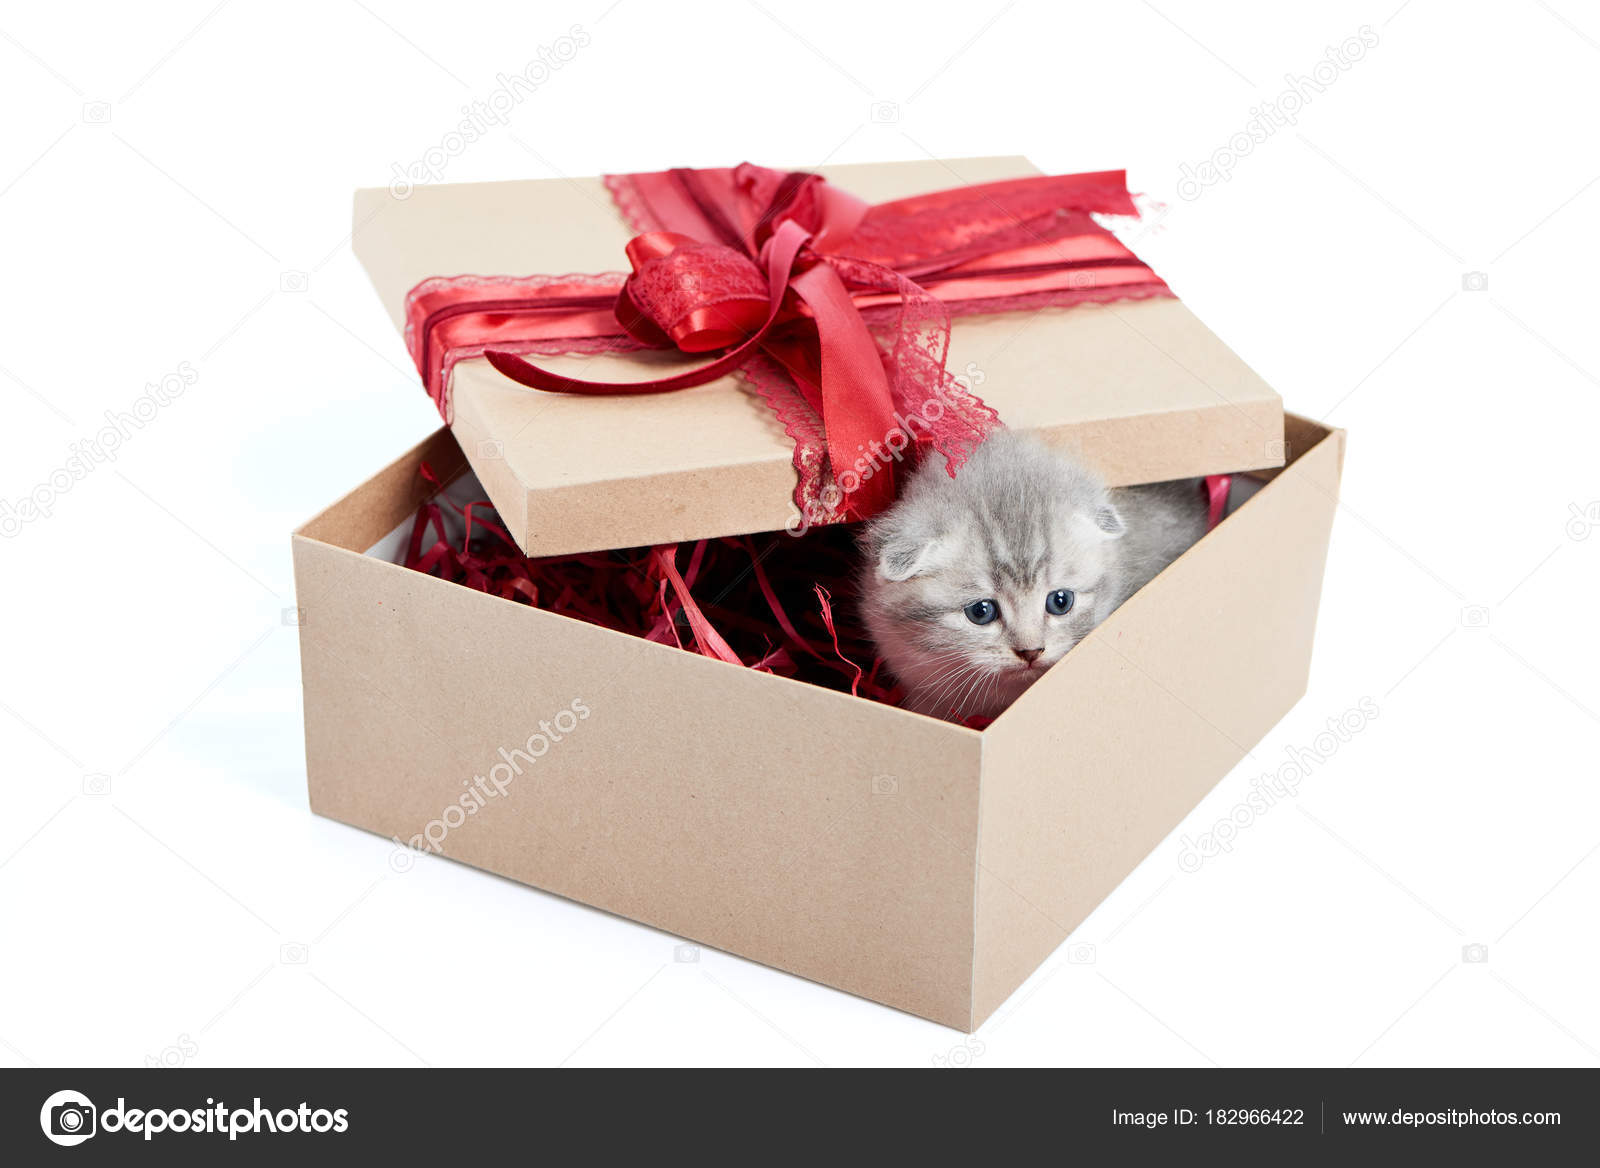 Little Grey Adorable Kitten Looking Out Of Decorated Birthday Box Being A Cute Present For Someone Small Gray Funny Charming Kittycat Amusing Playful